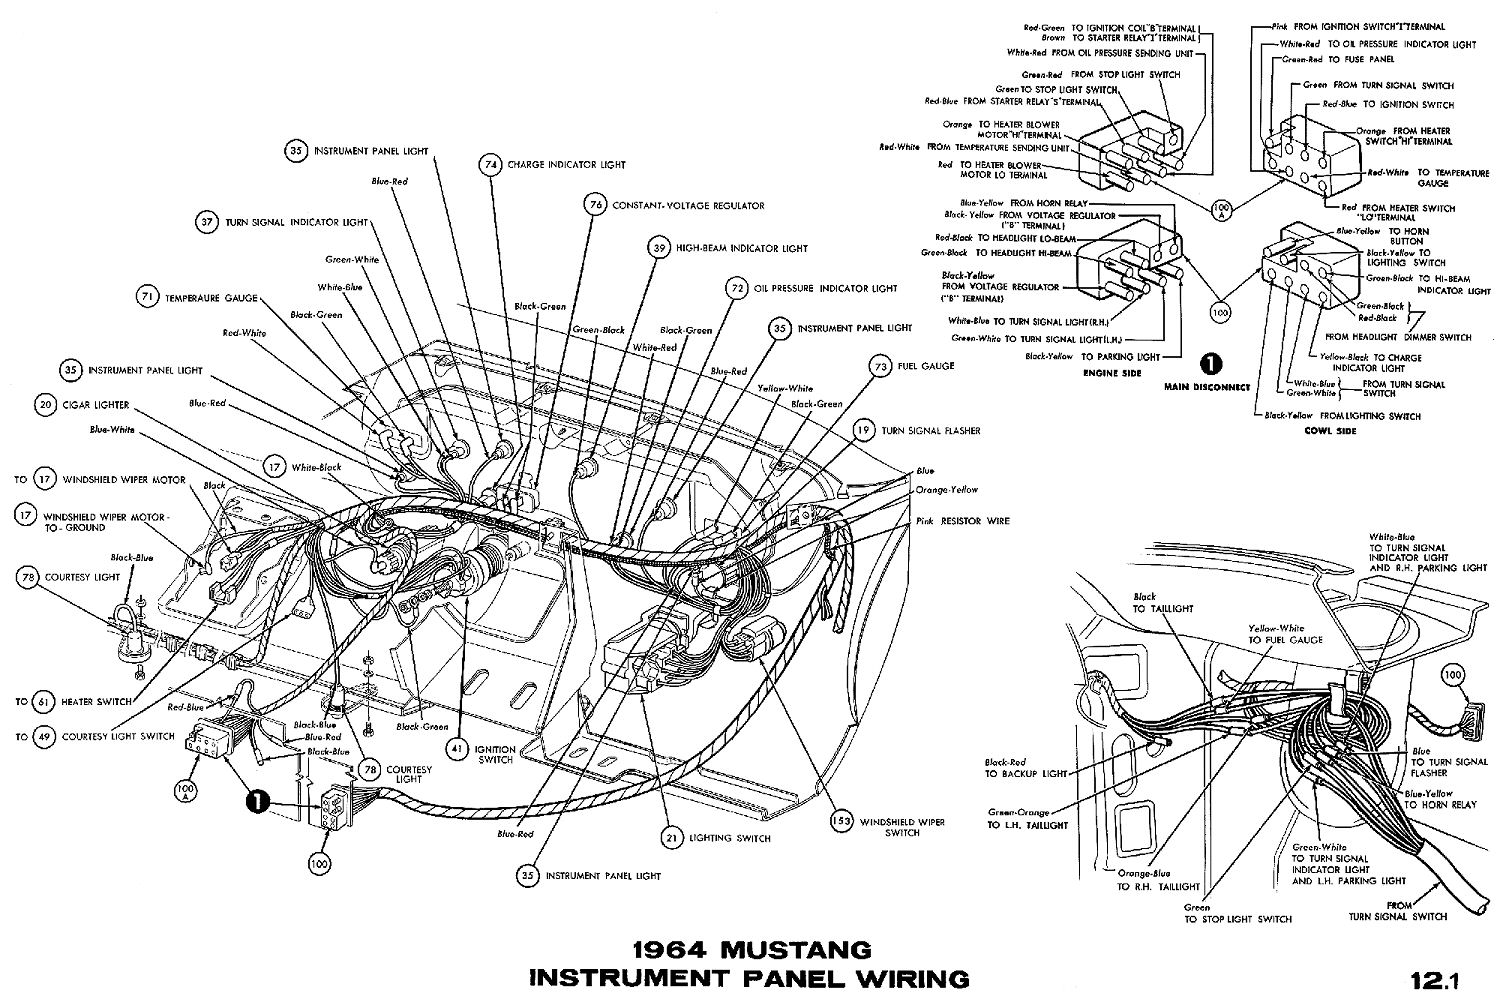 1968 Mustang Charging Wiring Diagram Harness 65 Radio Fuse Box 1964 Diagrams Average Joe Restoration